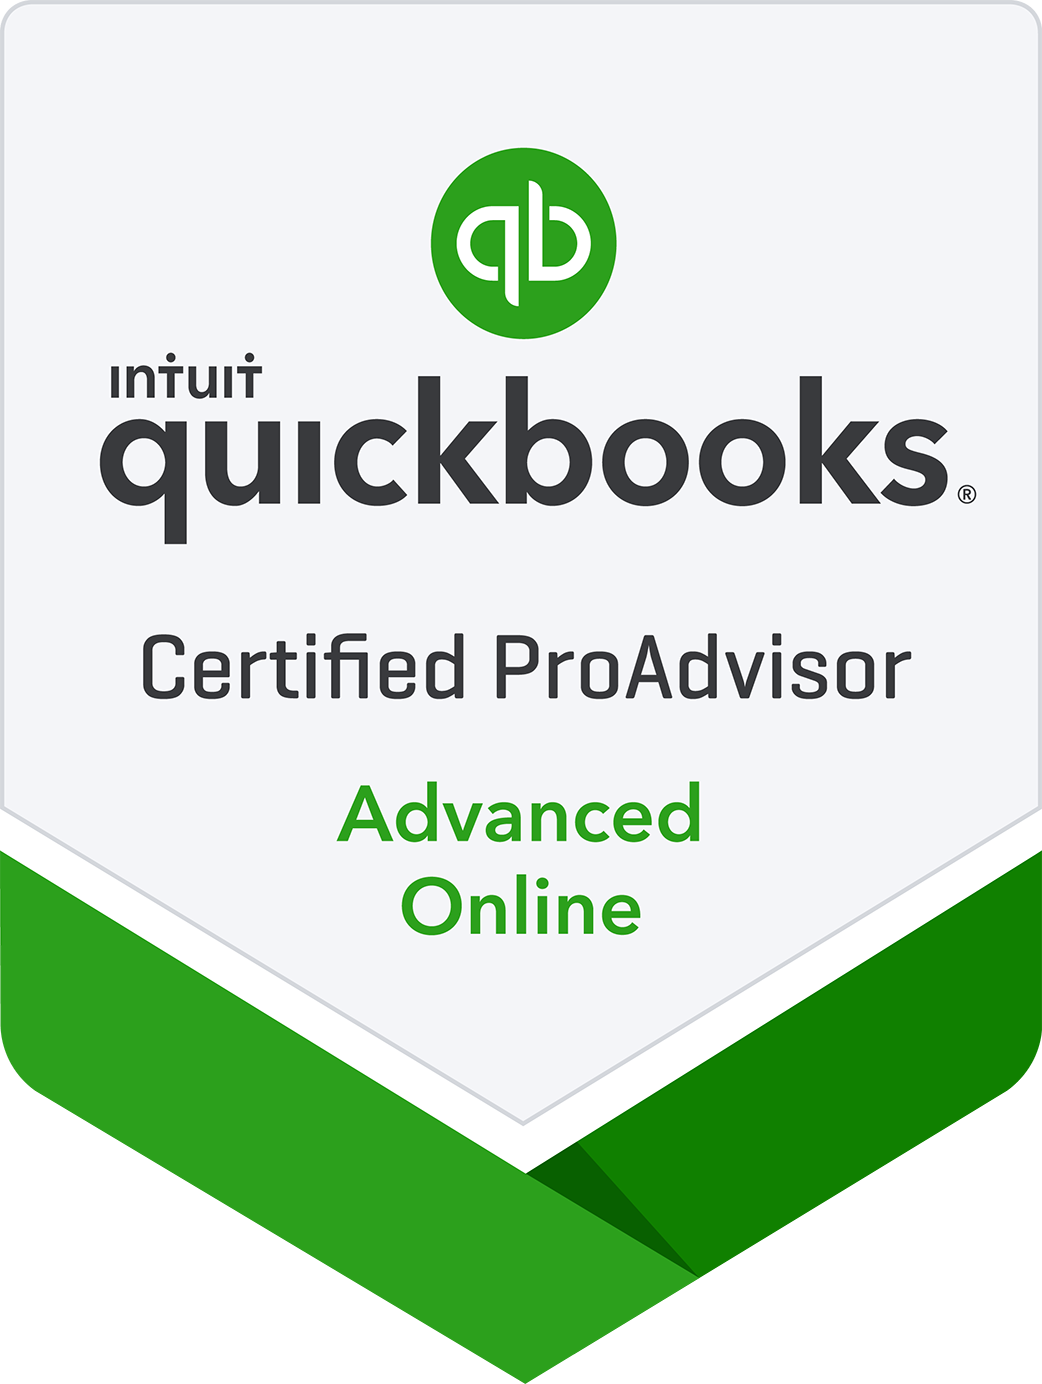 Certified QuickBooks Online Advanced ProAdvisor in Round Rock, TX